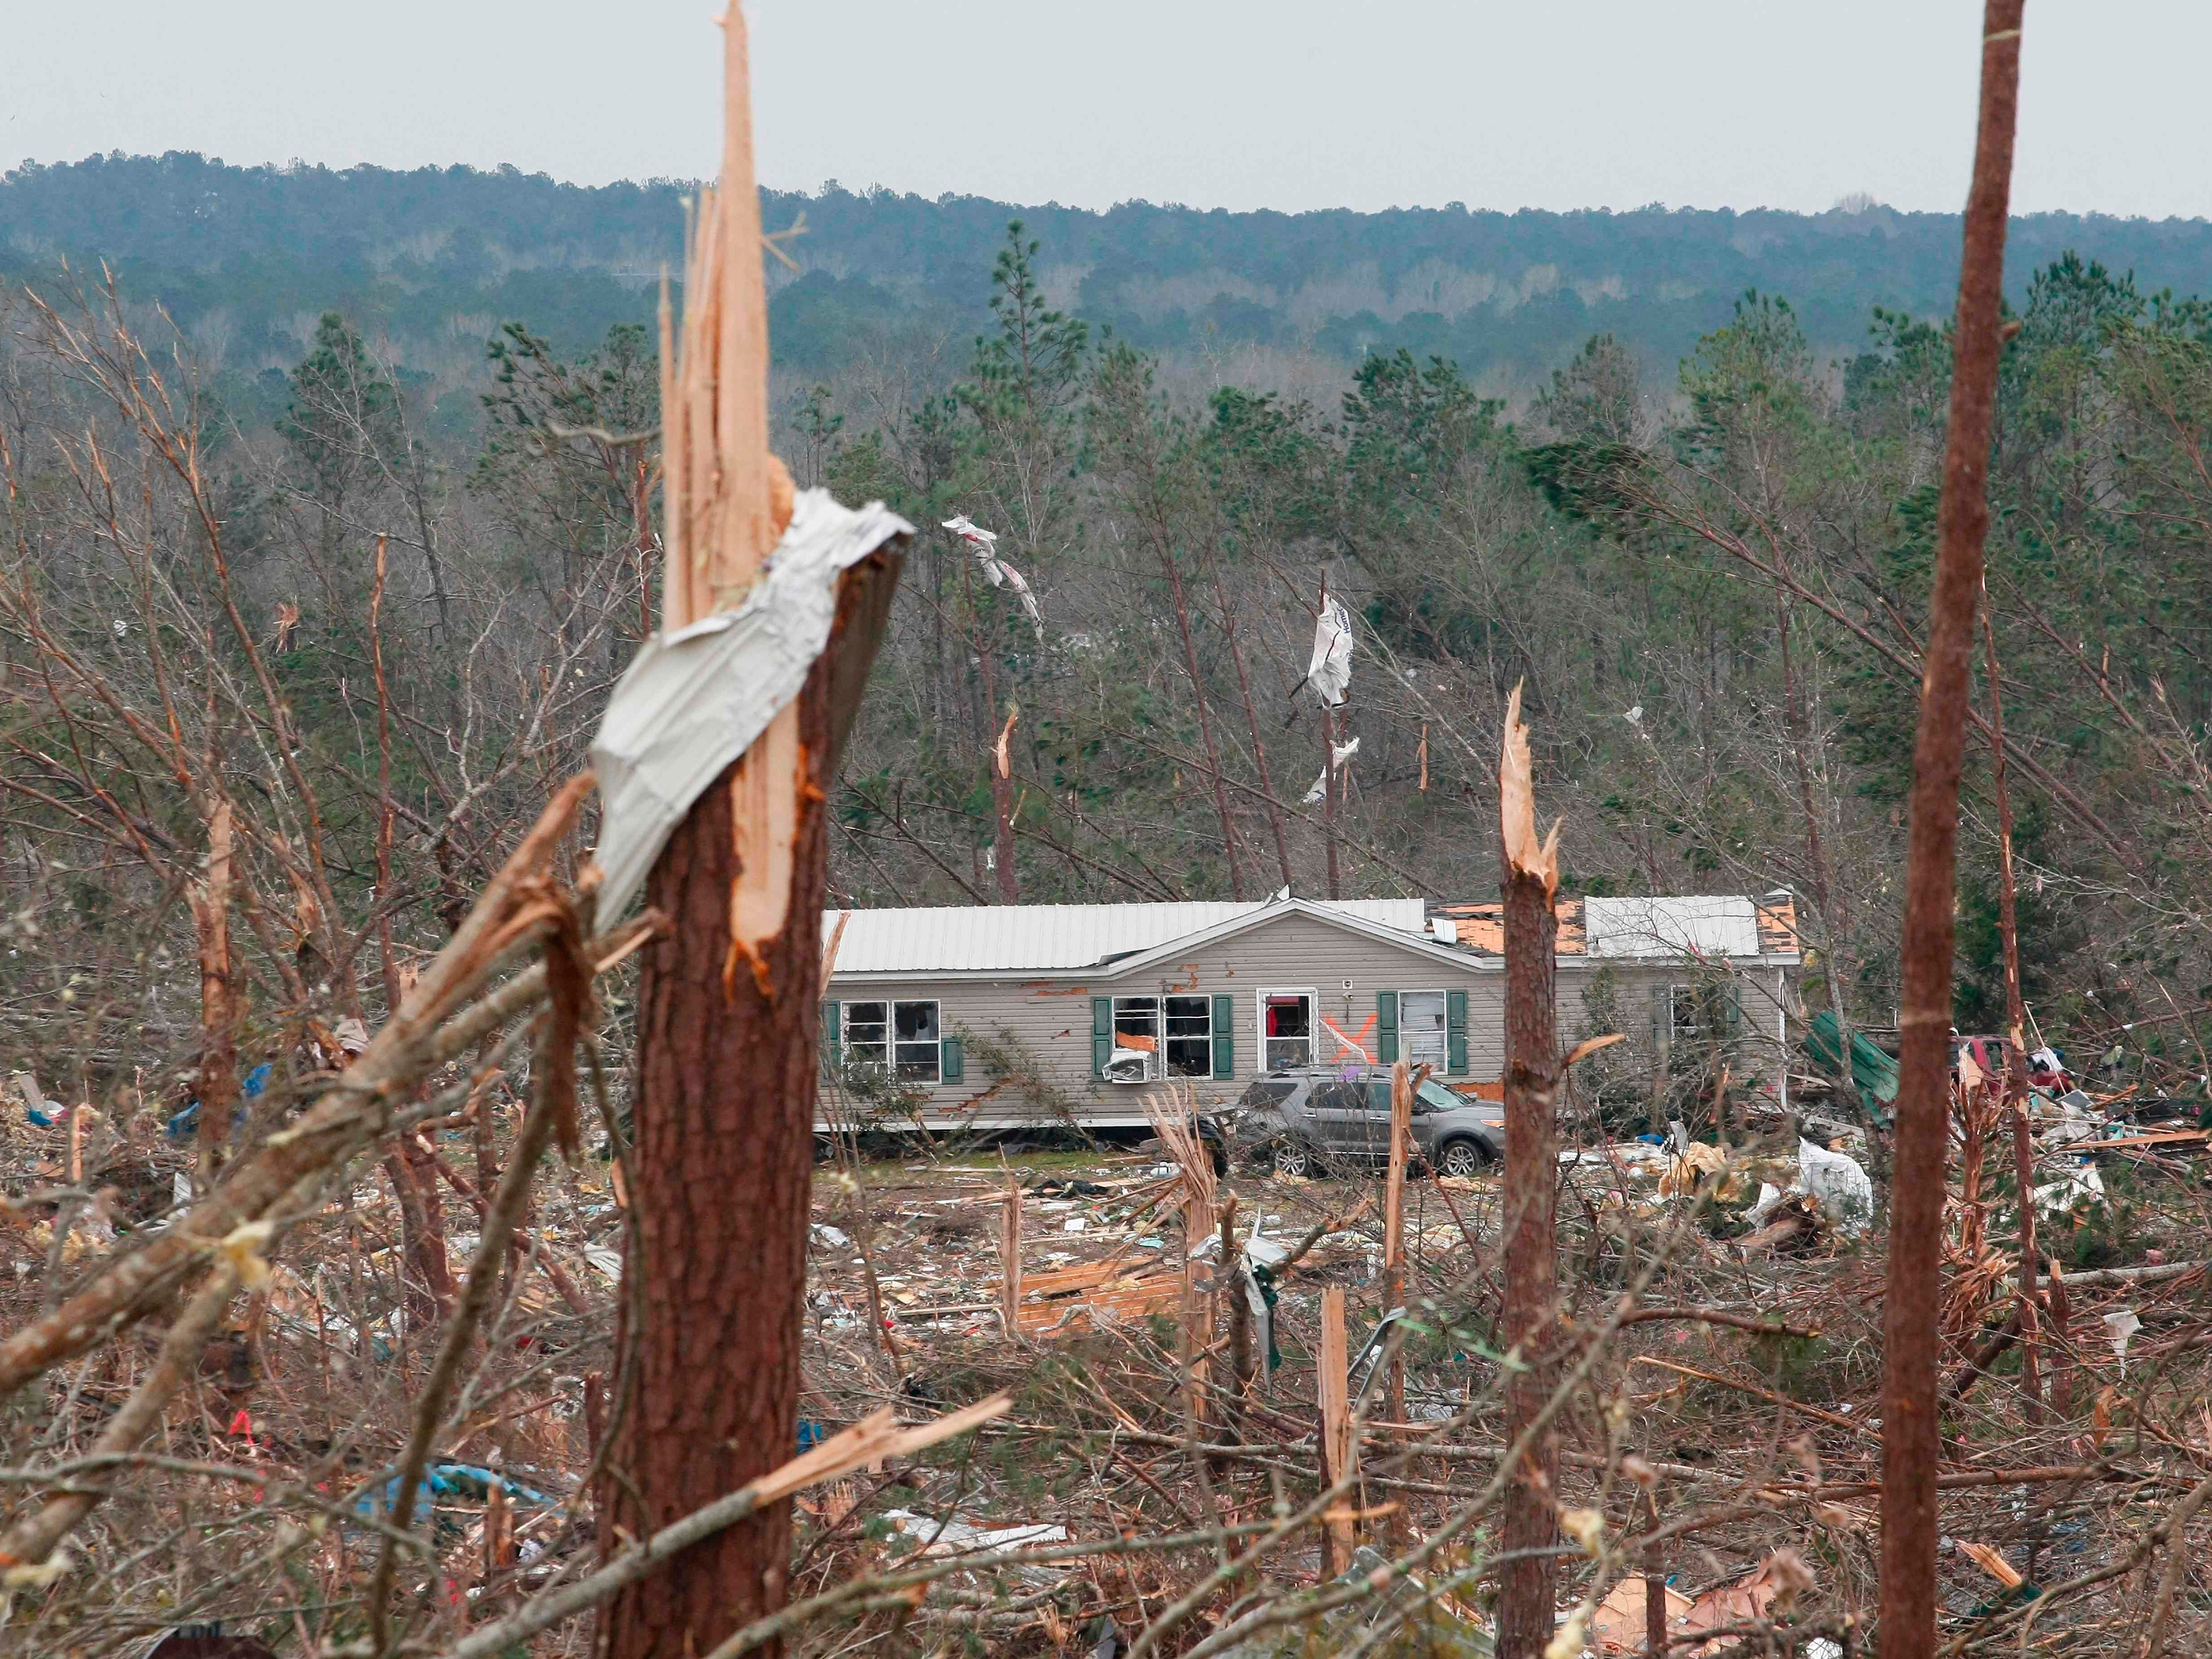 """Damage is seen from a tornado which killed at least 23 people in Beauregard, Alabama on March 4, 2019. Rescuers in Alabama were set to resume search operations Monday after at least two tornadoes killed 23 people, uprooted trees and caused """"catastrophic"""" damage to buildings and roads in the southern US state.""""The devastation is incredible,"""" Lee County Sheriff Jay Jones told the local CBS affiliate late Sunday.""""I cannot recall at least in the last 50 years... a situation where we have had this loss of life that we experienced today."""""""